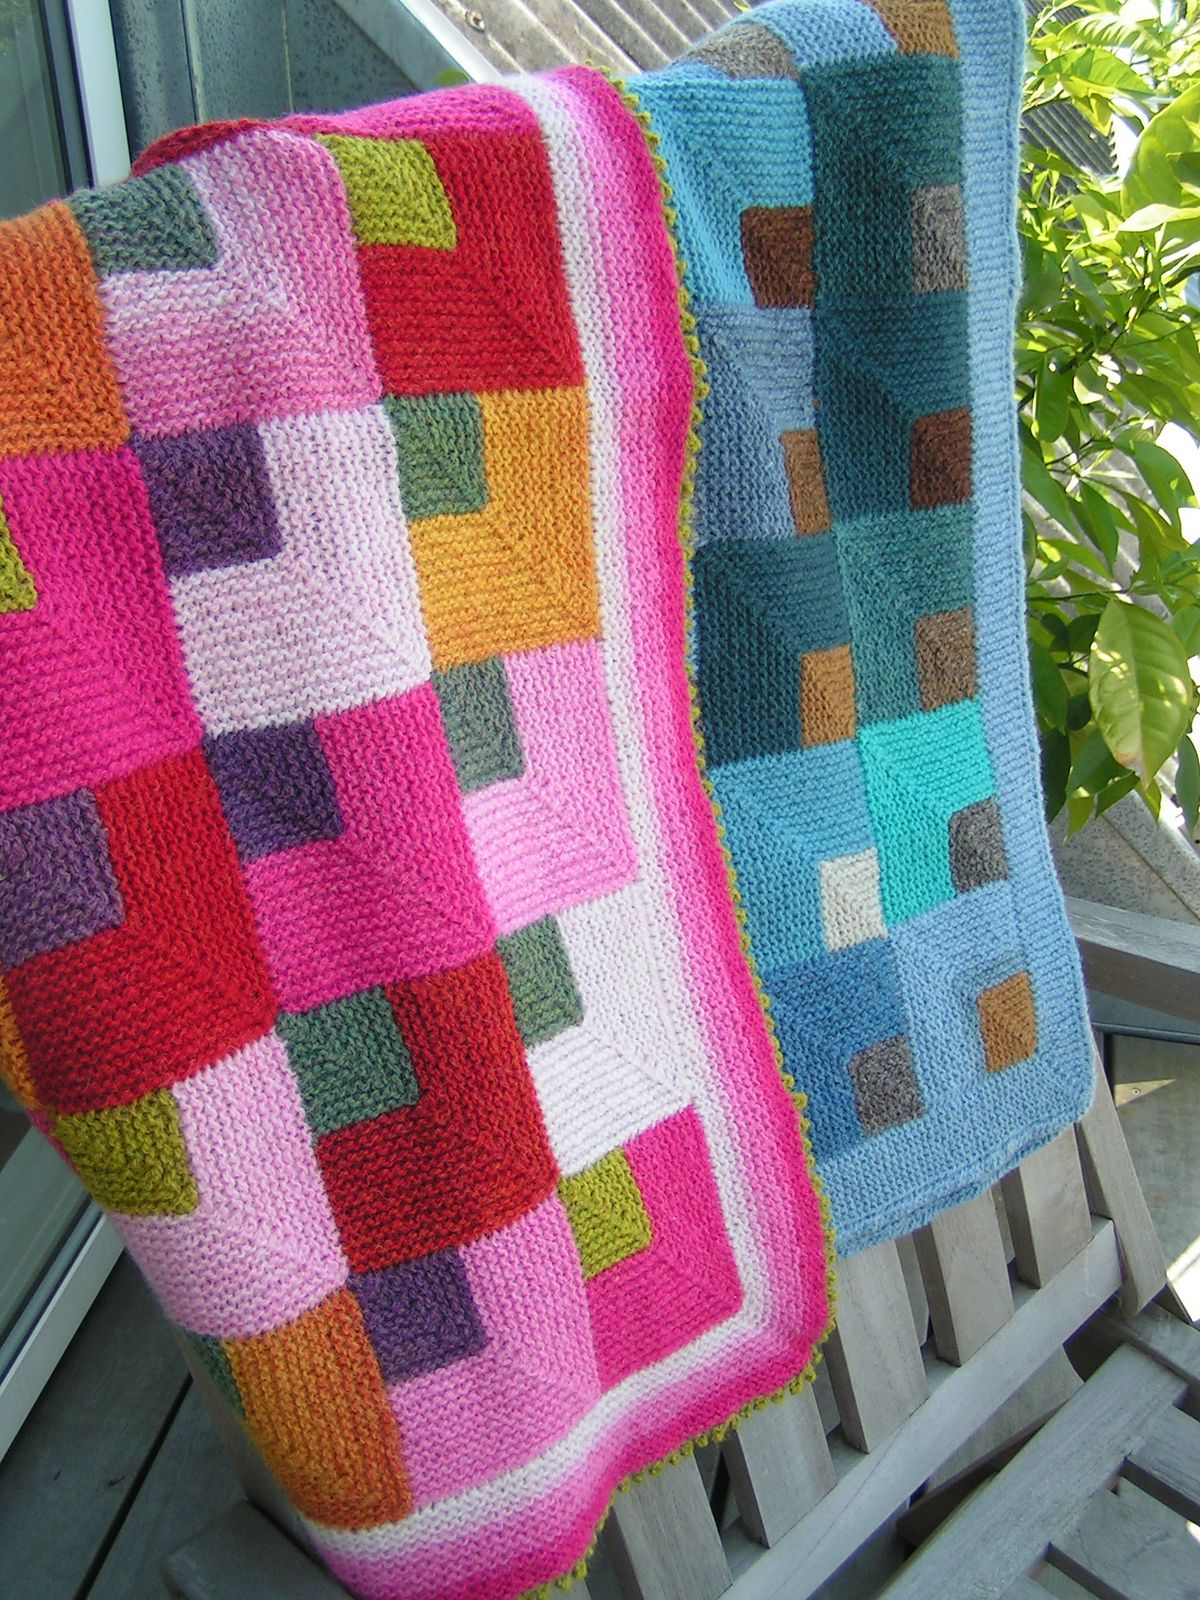 Carl And Carla Pattern By Ruth Sorensen Crochet Blanket Patterns